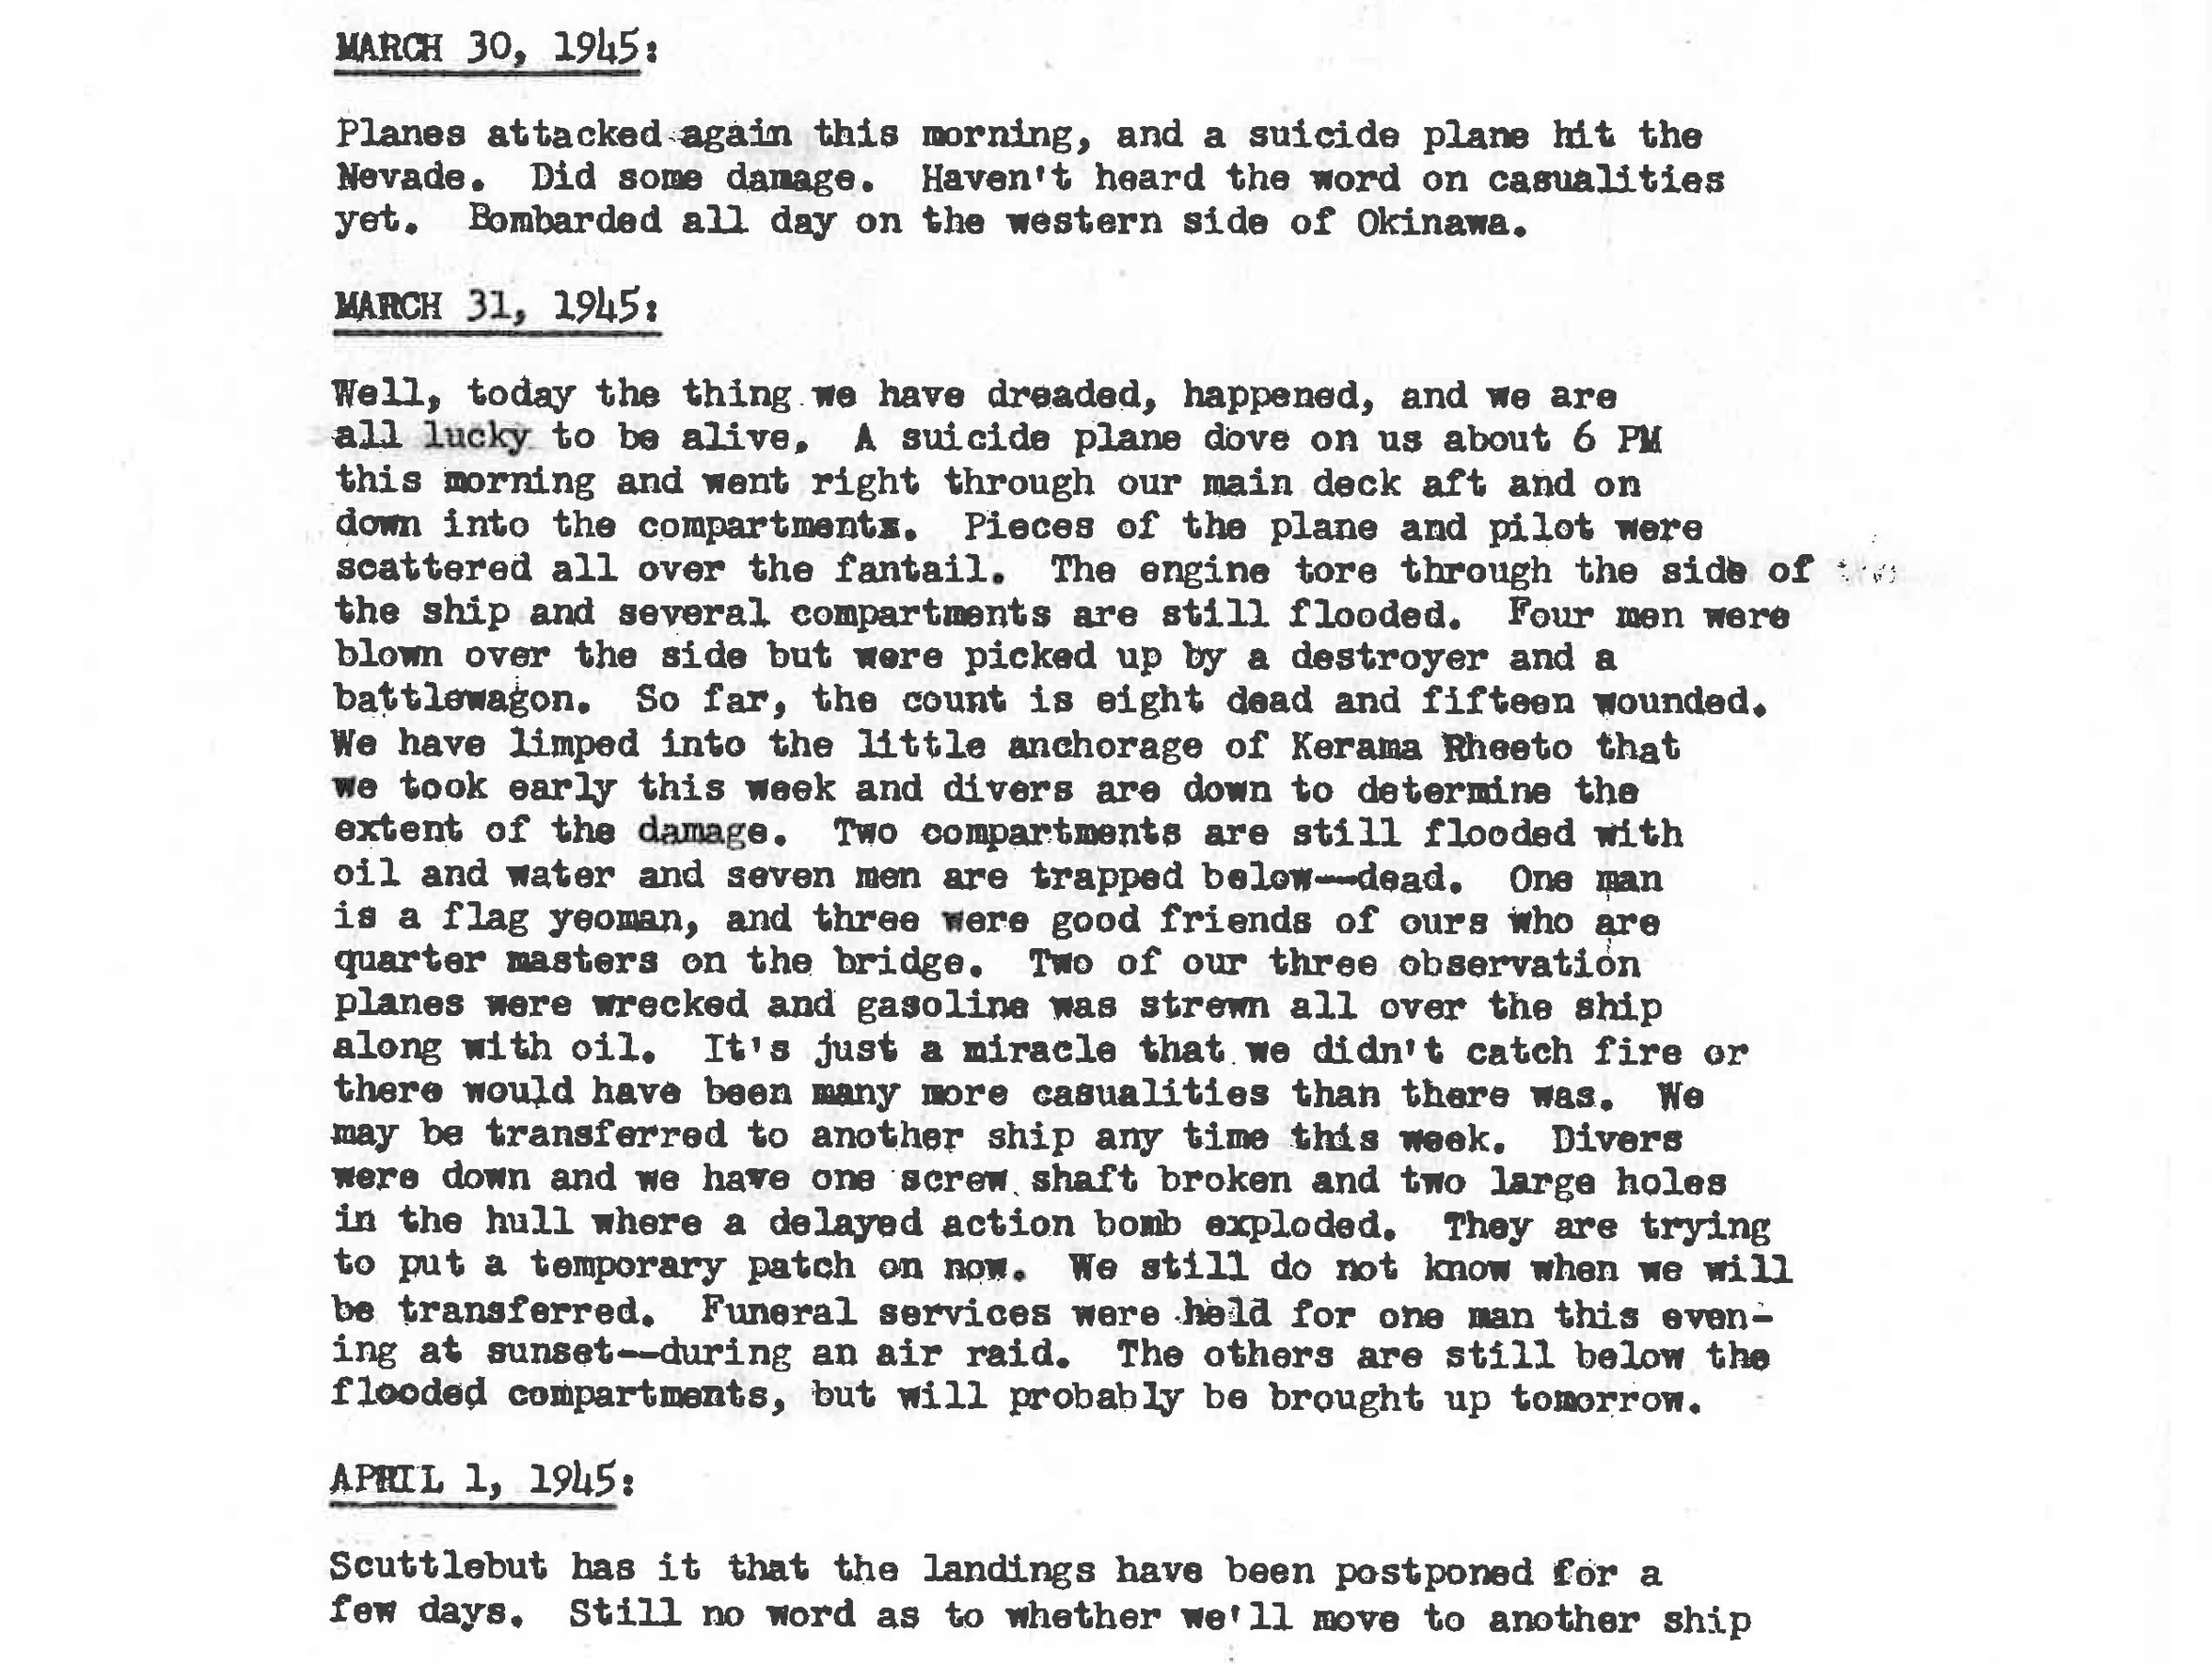 March 31, 1945 log from the Kamikaze attack on the